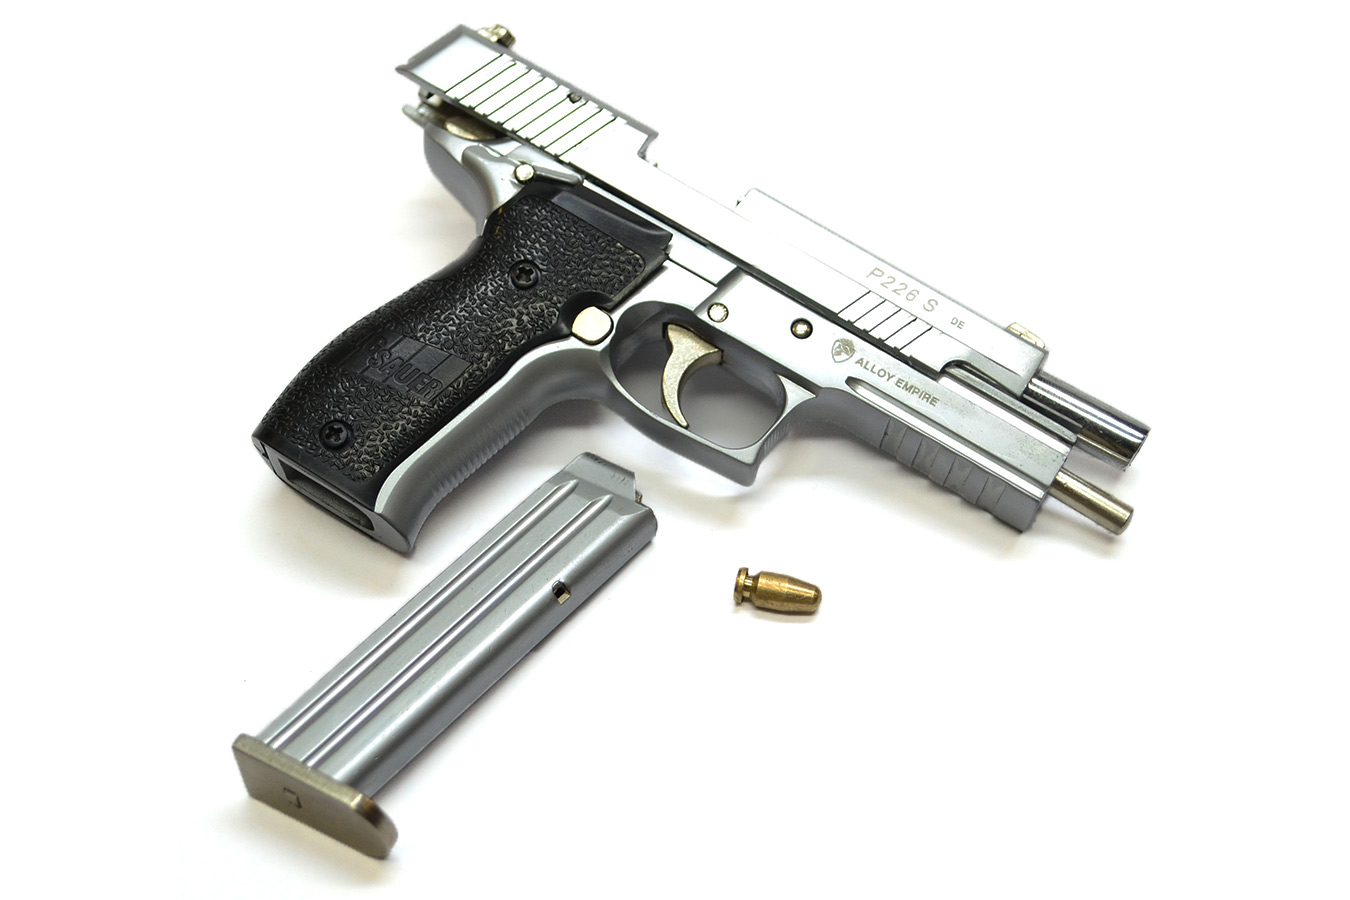 Pistol Sig Sauer P226 model in a scale of 1: 2